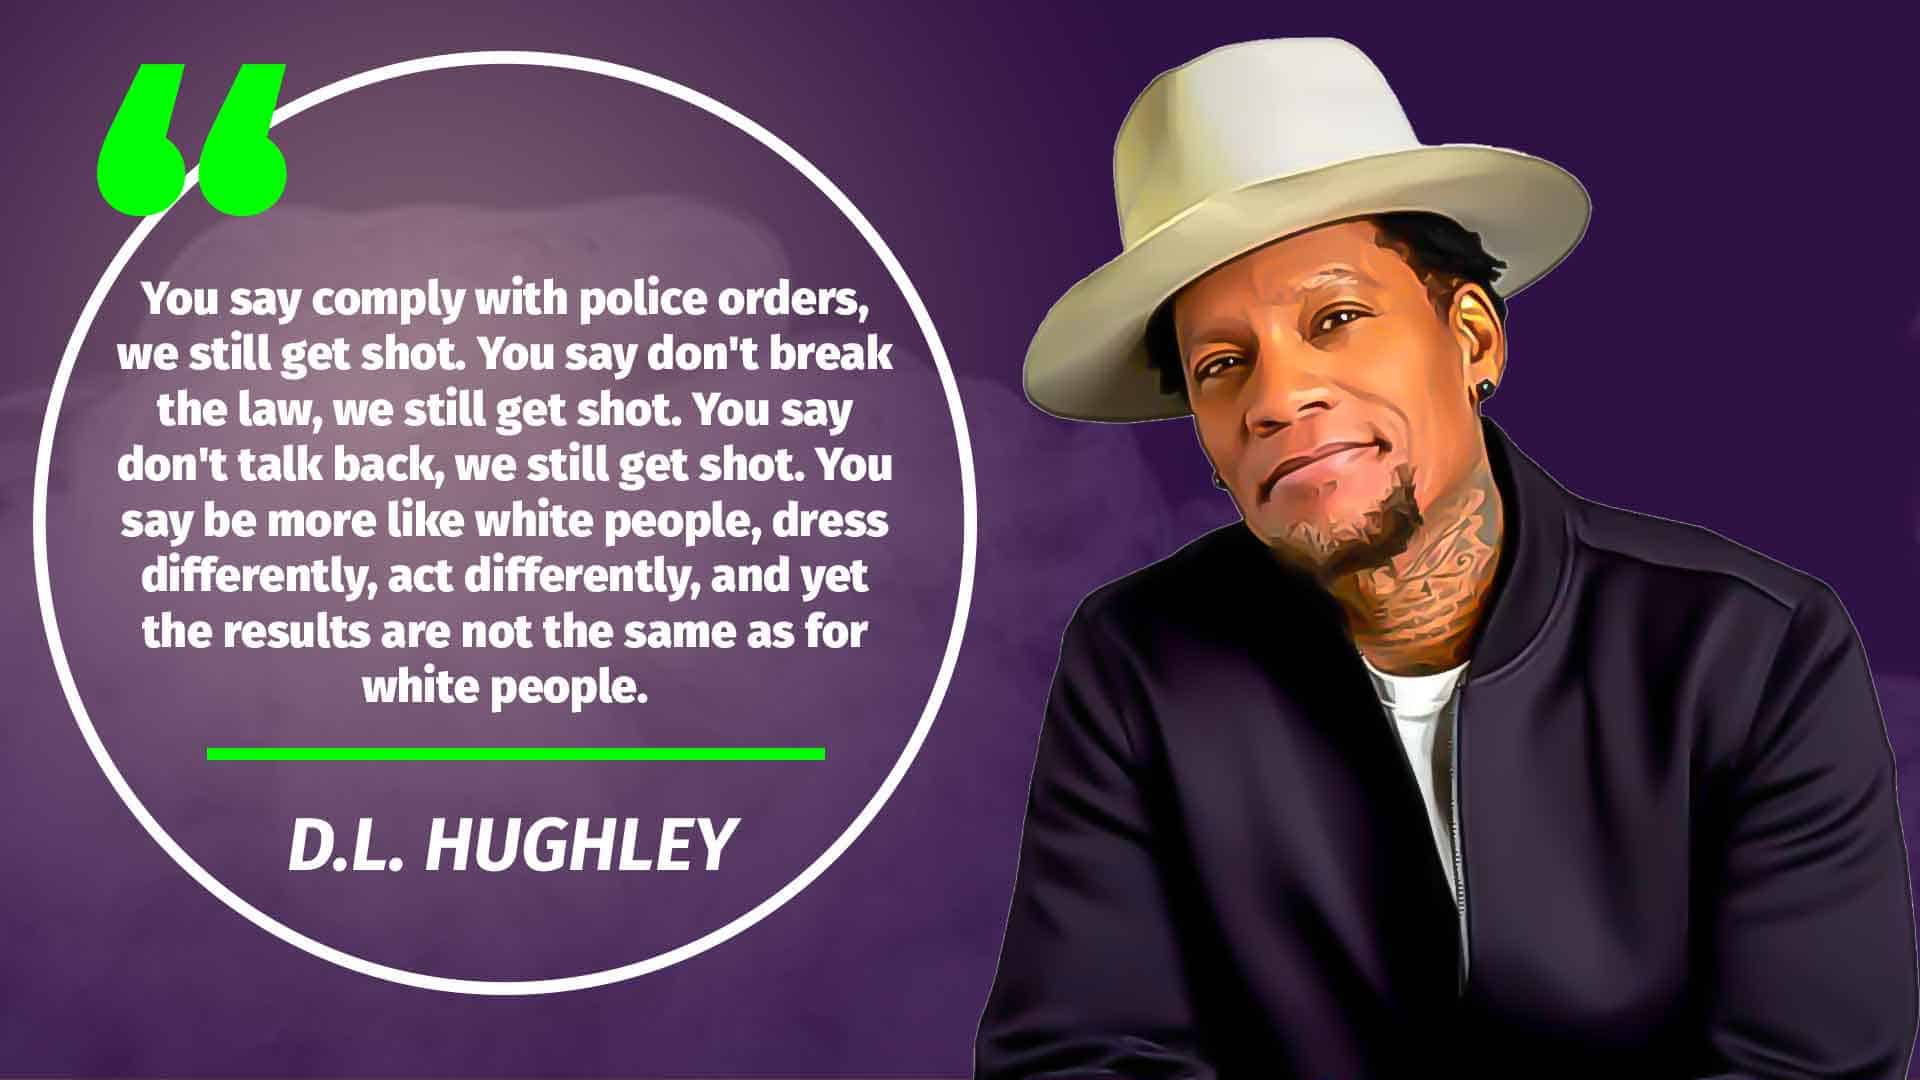 DL Hughley QUOTE 4